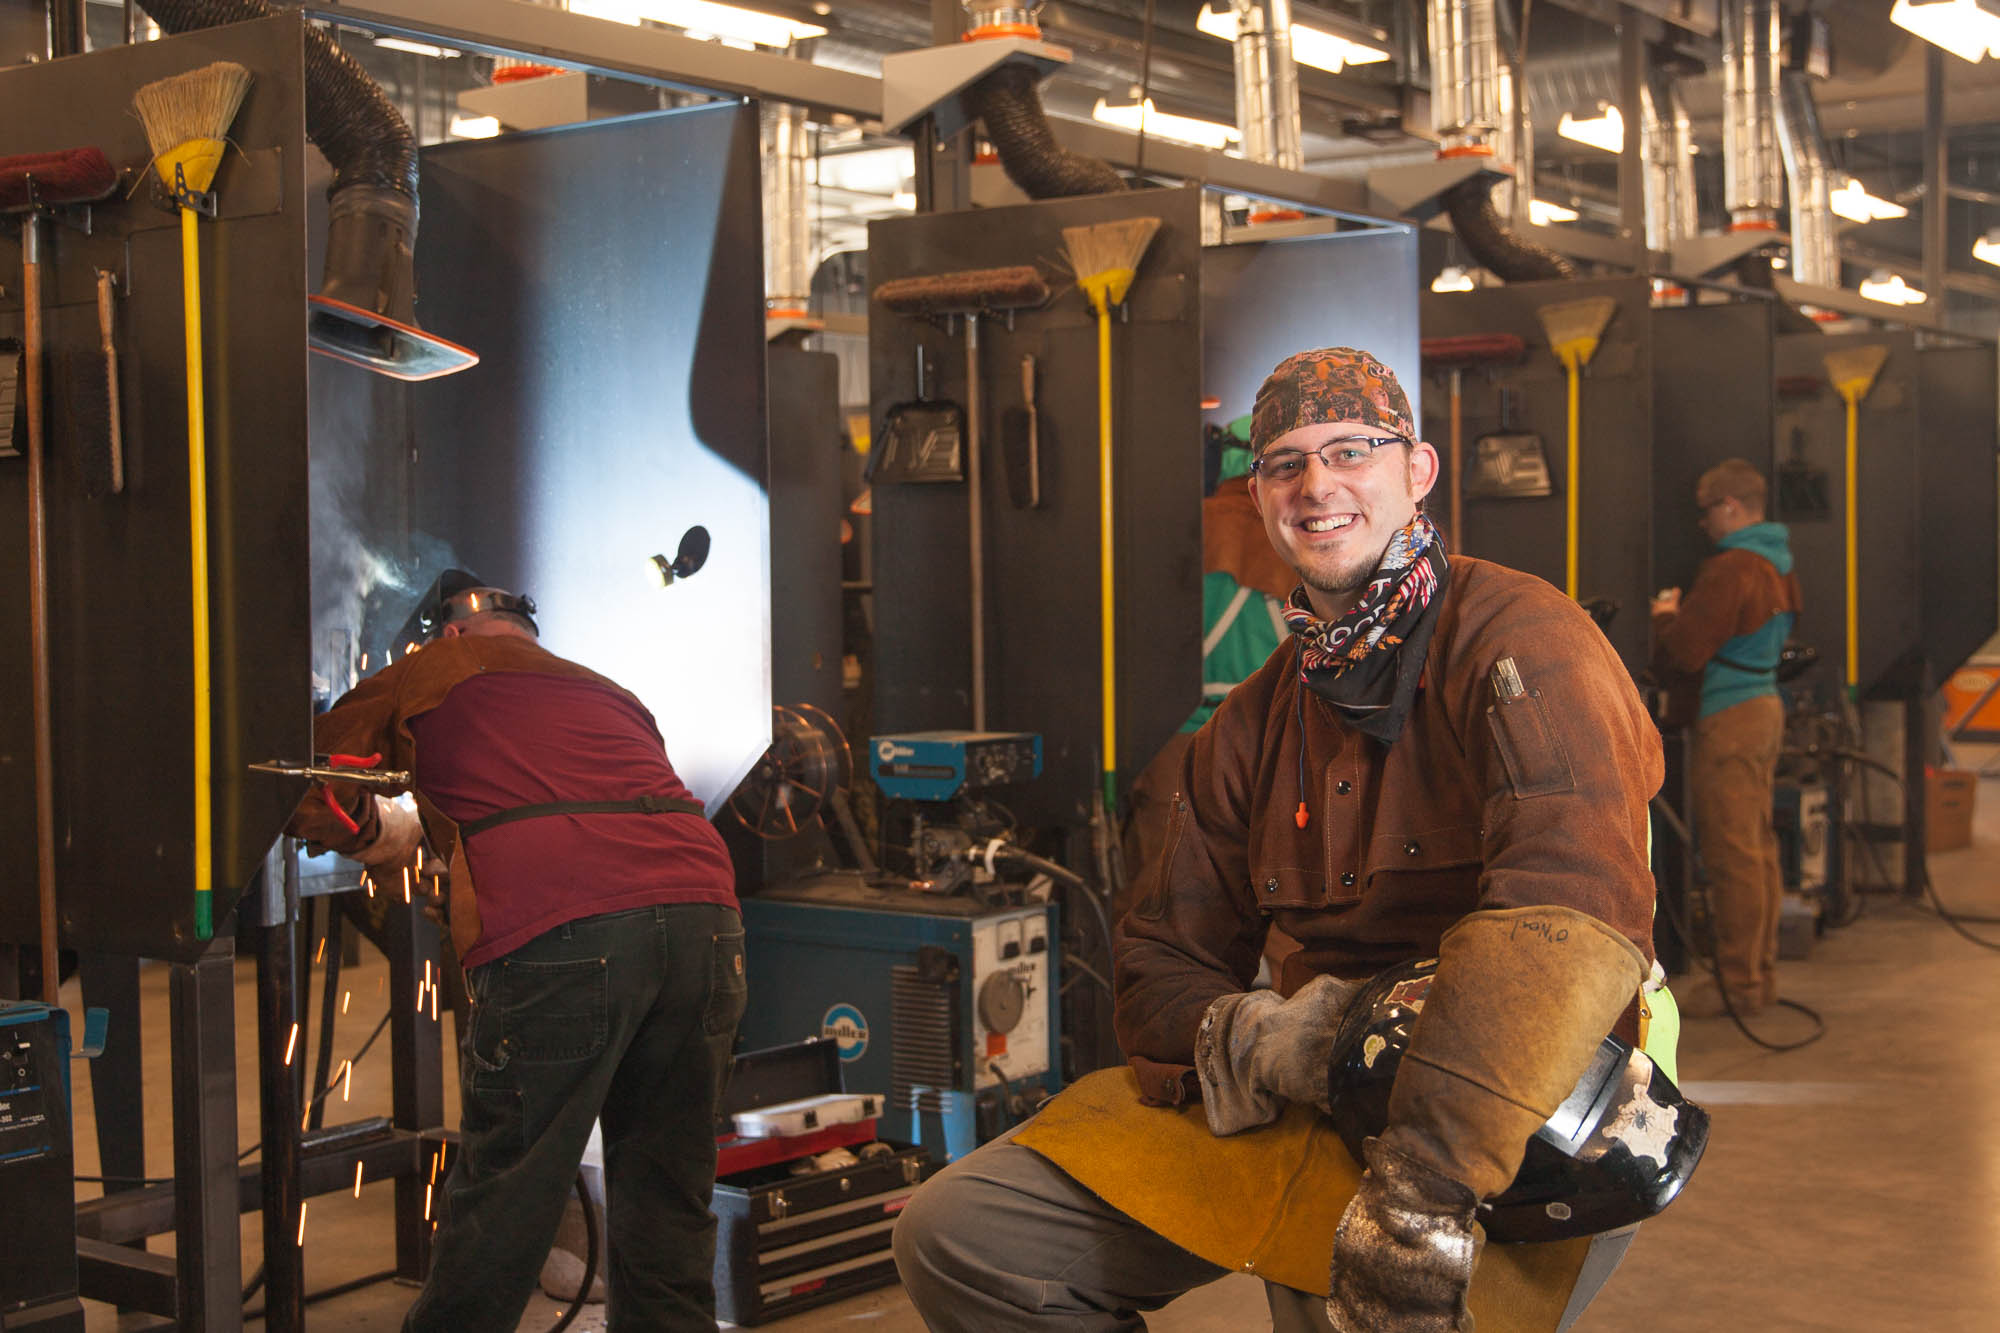 Welding student in welding shop